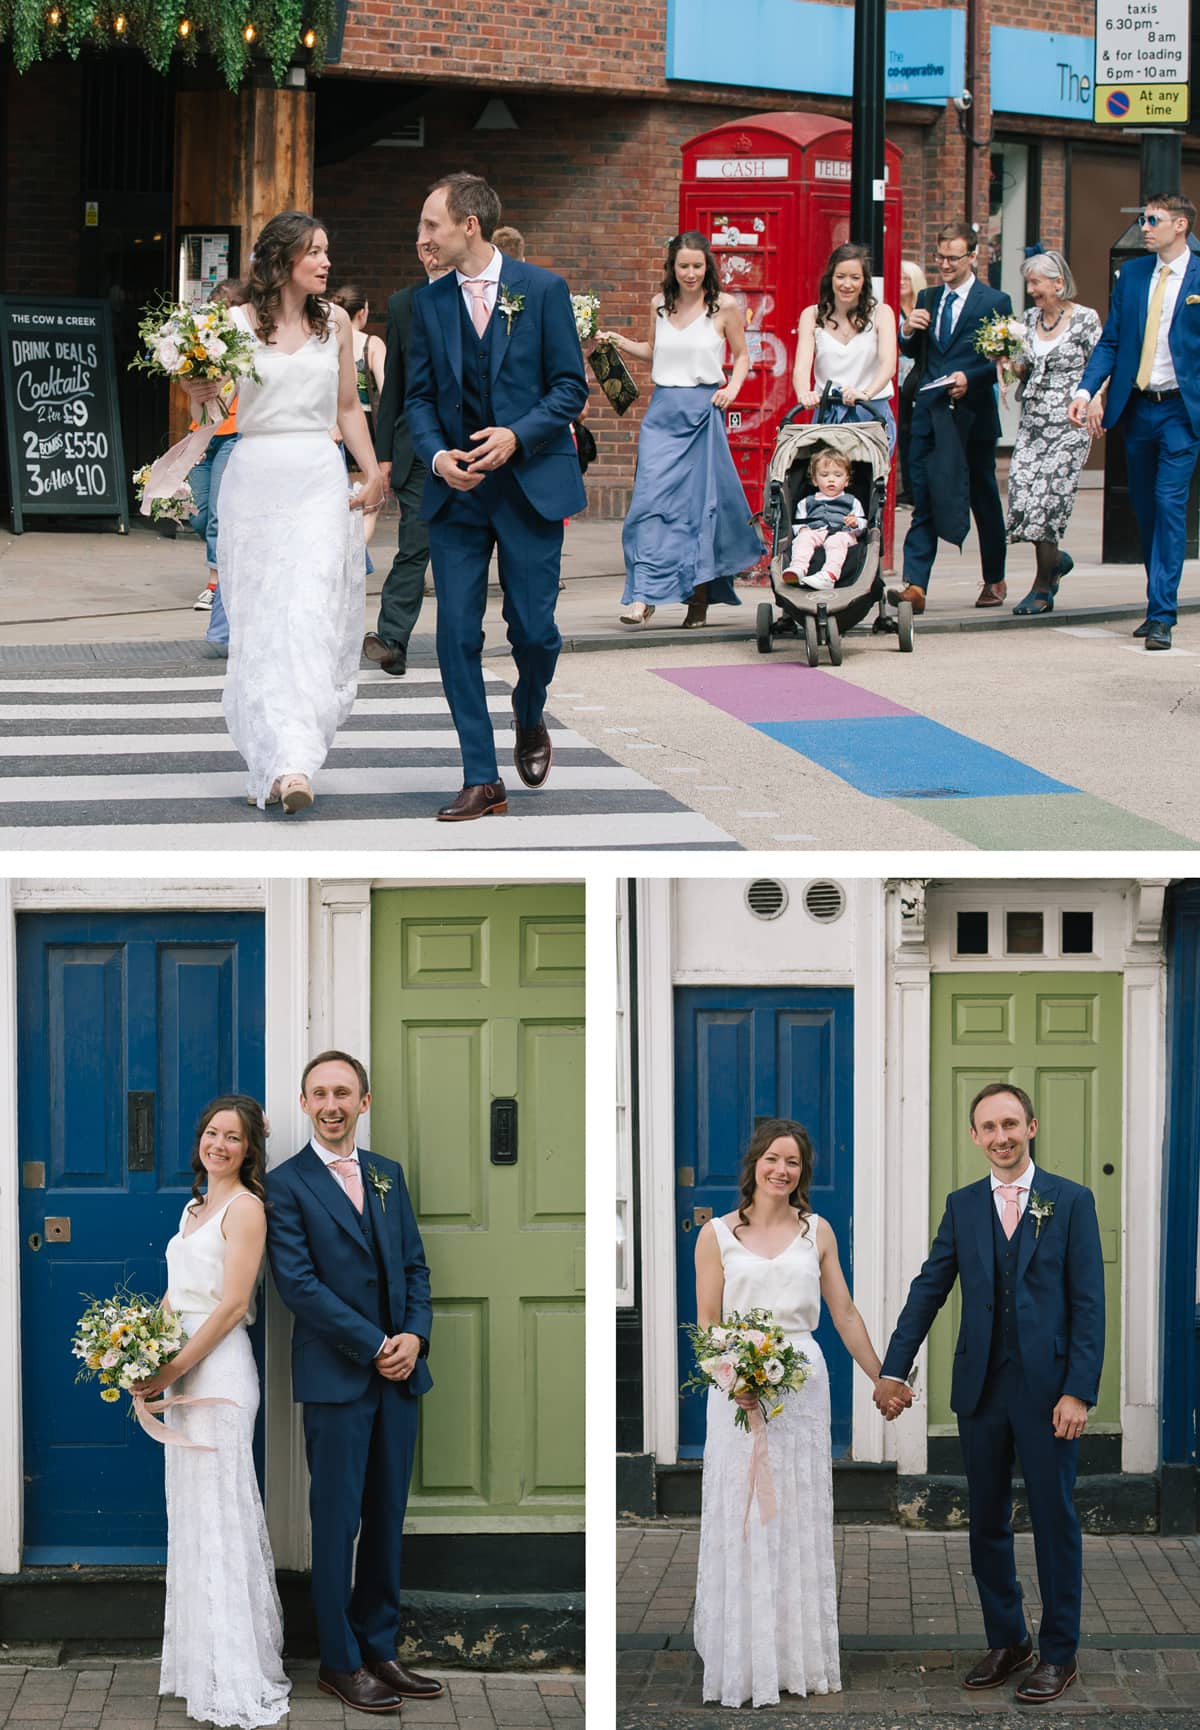 Bride and groom in front of green and blue doors